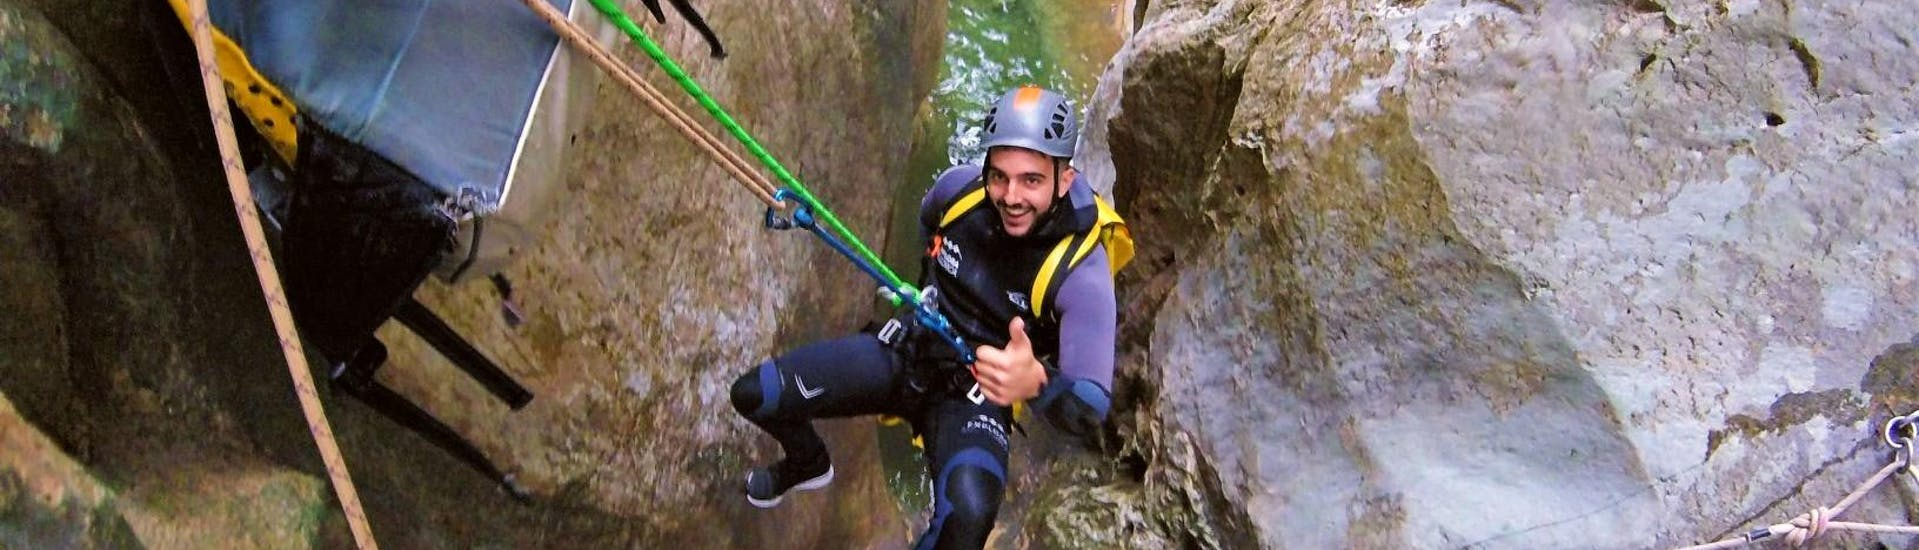 Canyoning in Mallorca for Experts with Explora Mallorca - Hero image